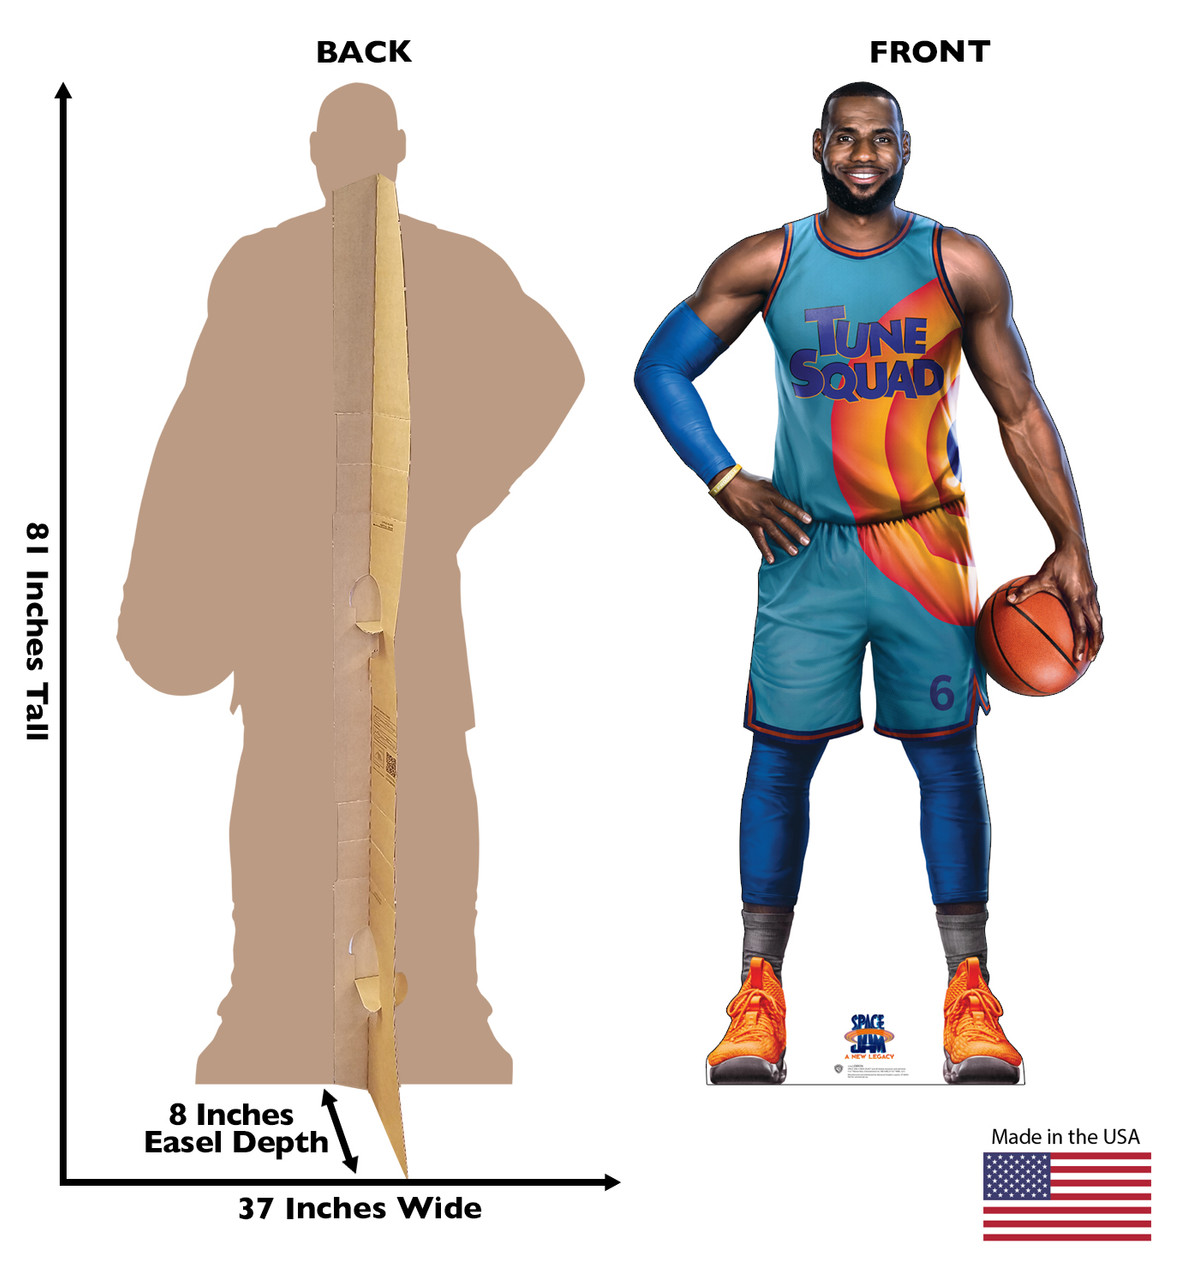 Life-size cardboard standee of Lebron from Space Jam A New Legacy with front and back dimensions.